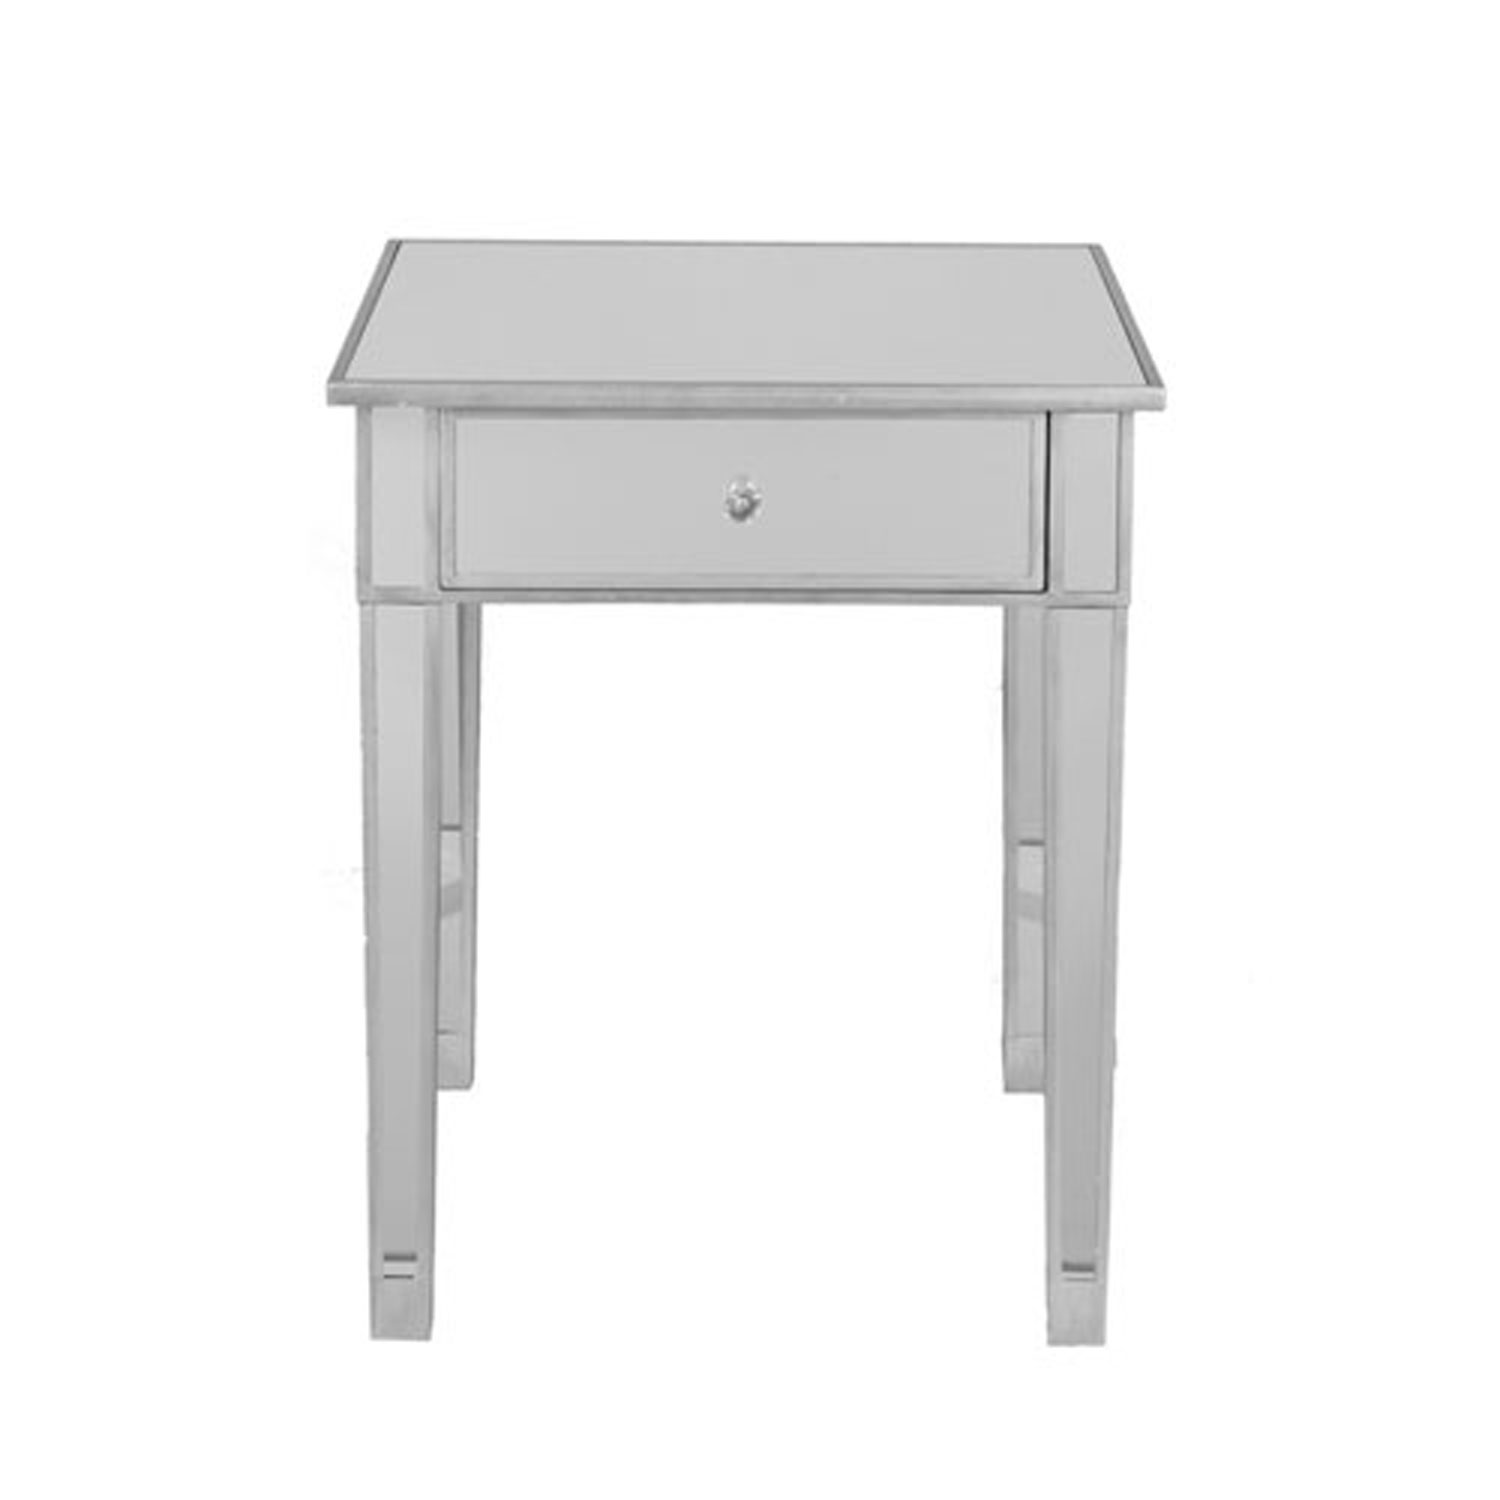 first vivian silver mirrored accent table bellacor with drawer hover zoom marble living room nautical style chandeliers west elm storage universal broadmoore furniture pier